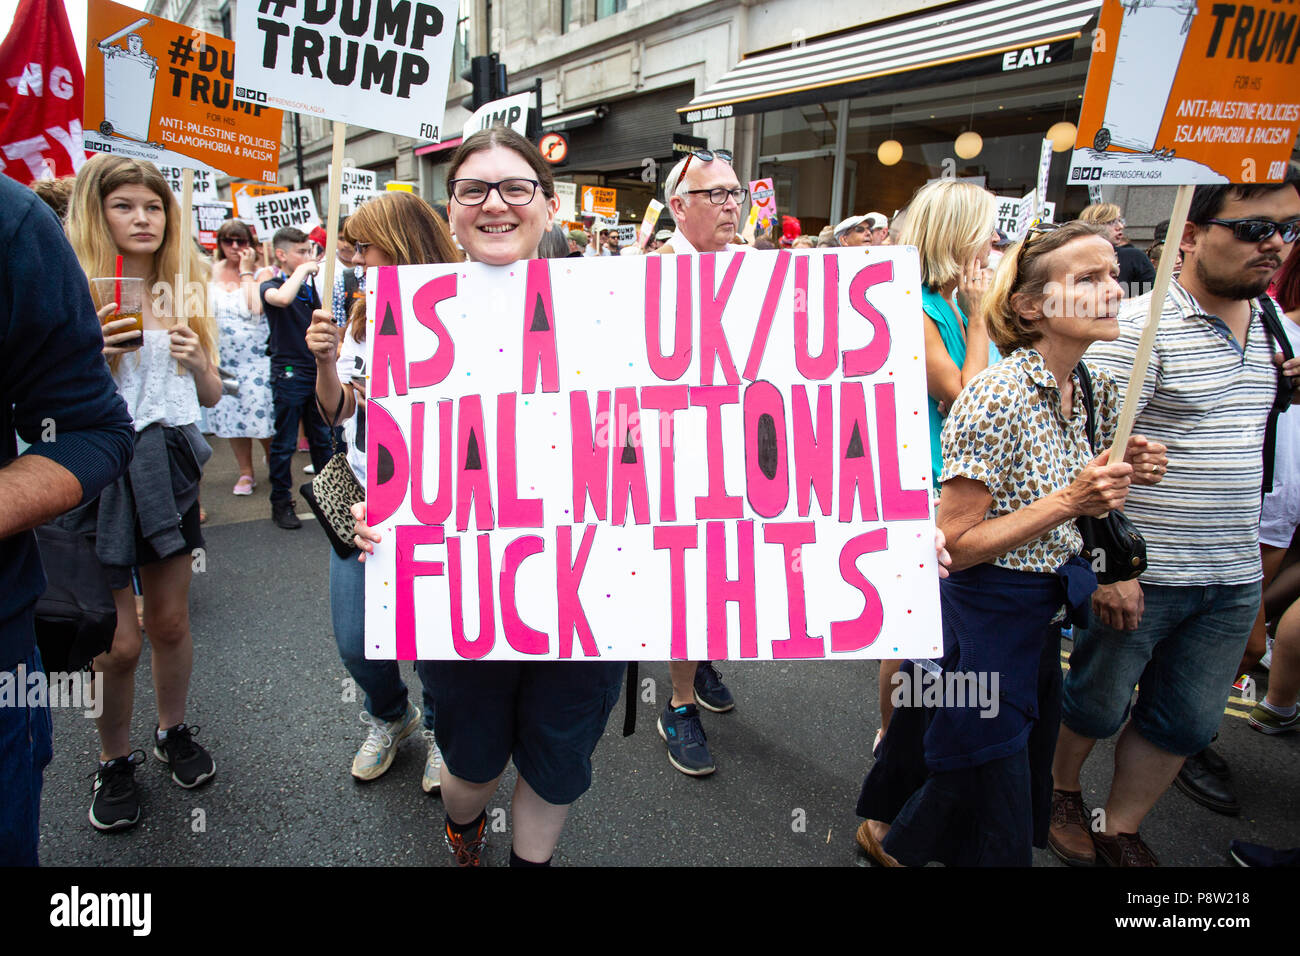 London/United Kingdom - July 13, 2018: Protests against Donald Trump continue with a march in central London ending up in Trafalgar Square for a rally. Many Americans were present. Credit: Martin Leitch/Alamy Live News Stock Photo